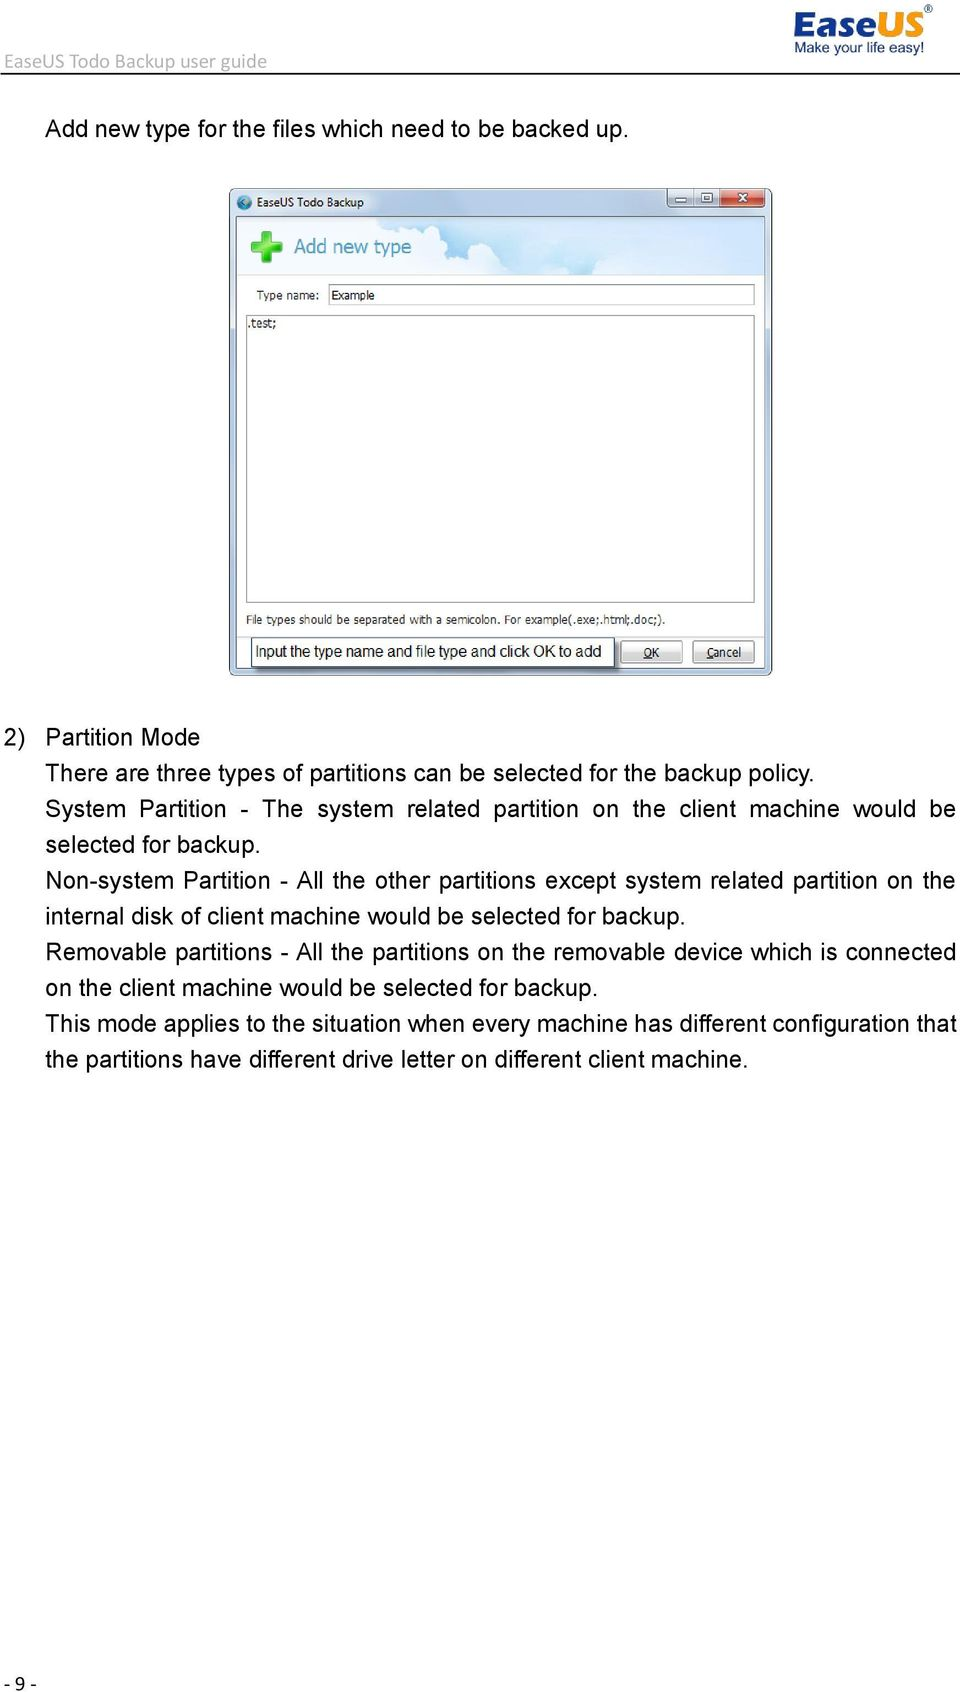 Non-system Partition - All the other partitions except system related partition on the internal disk of client machine would be selected for backup.